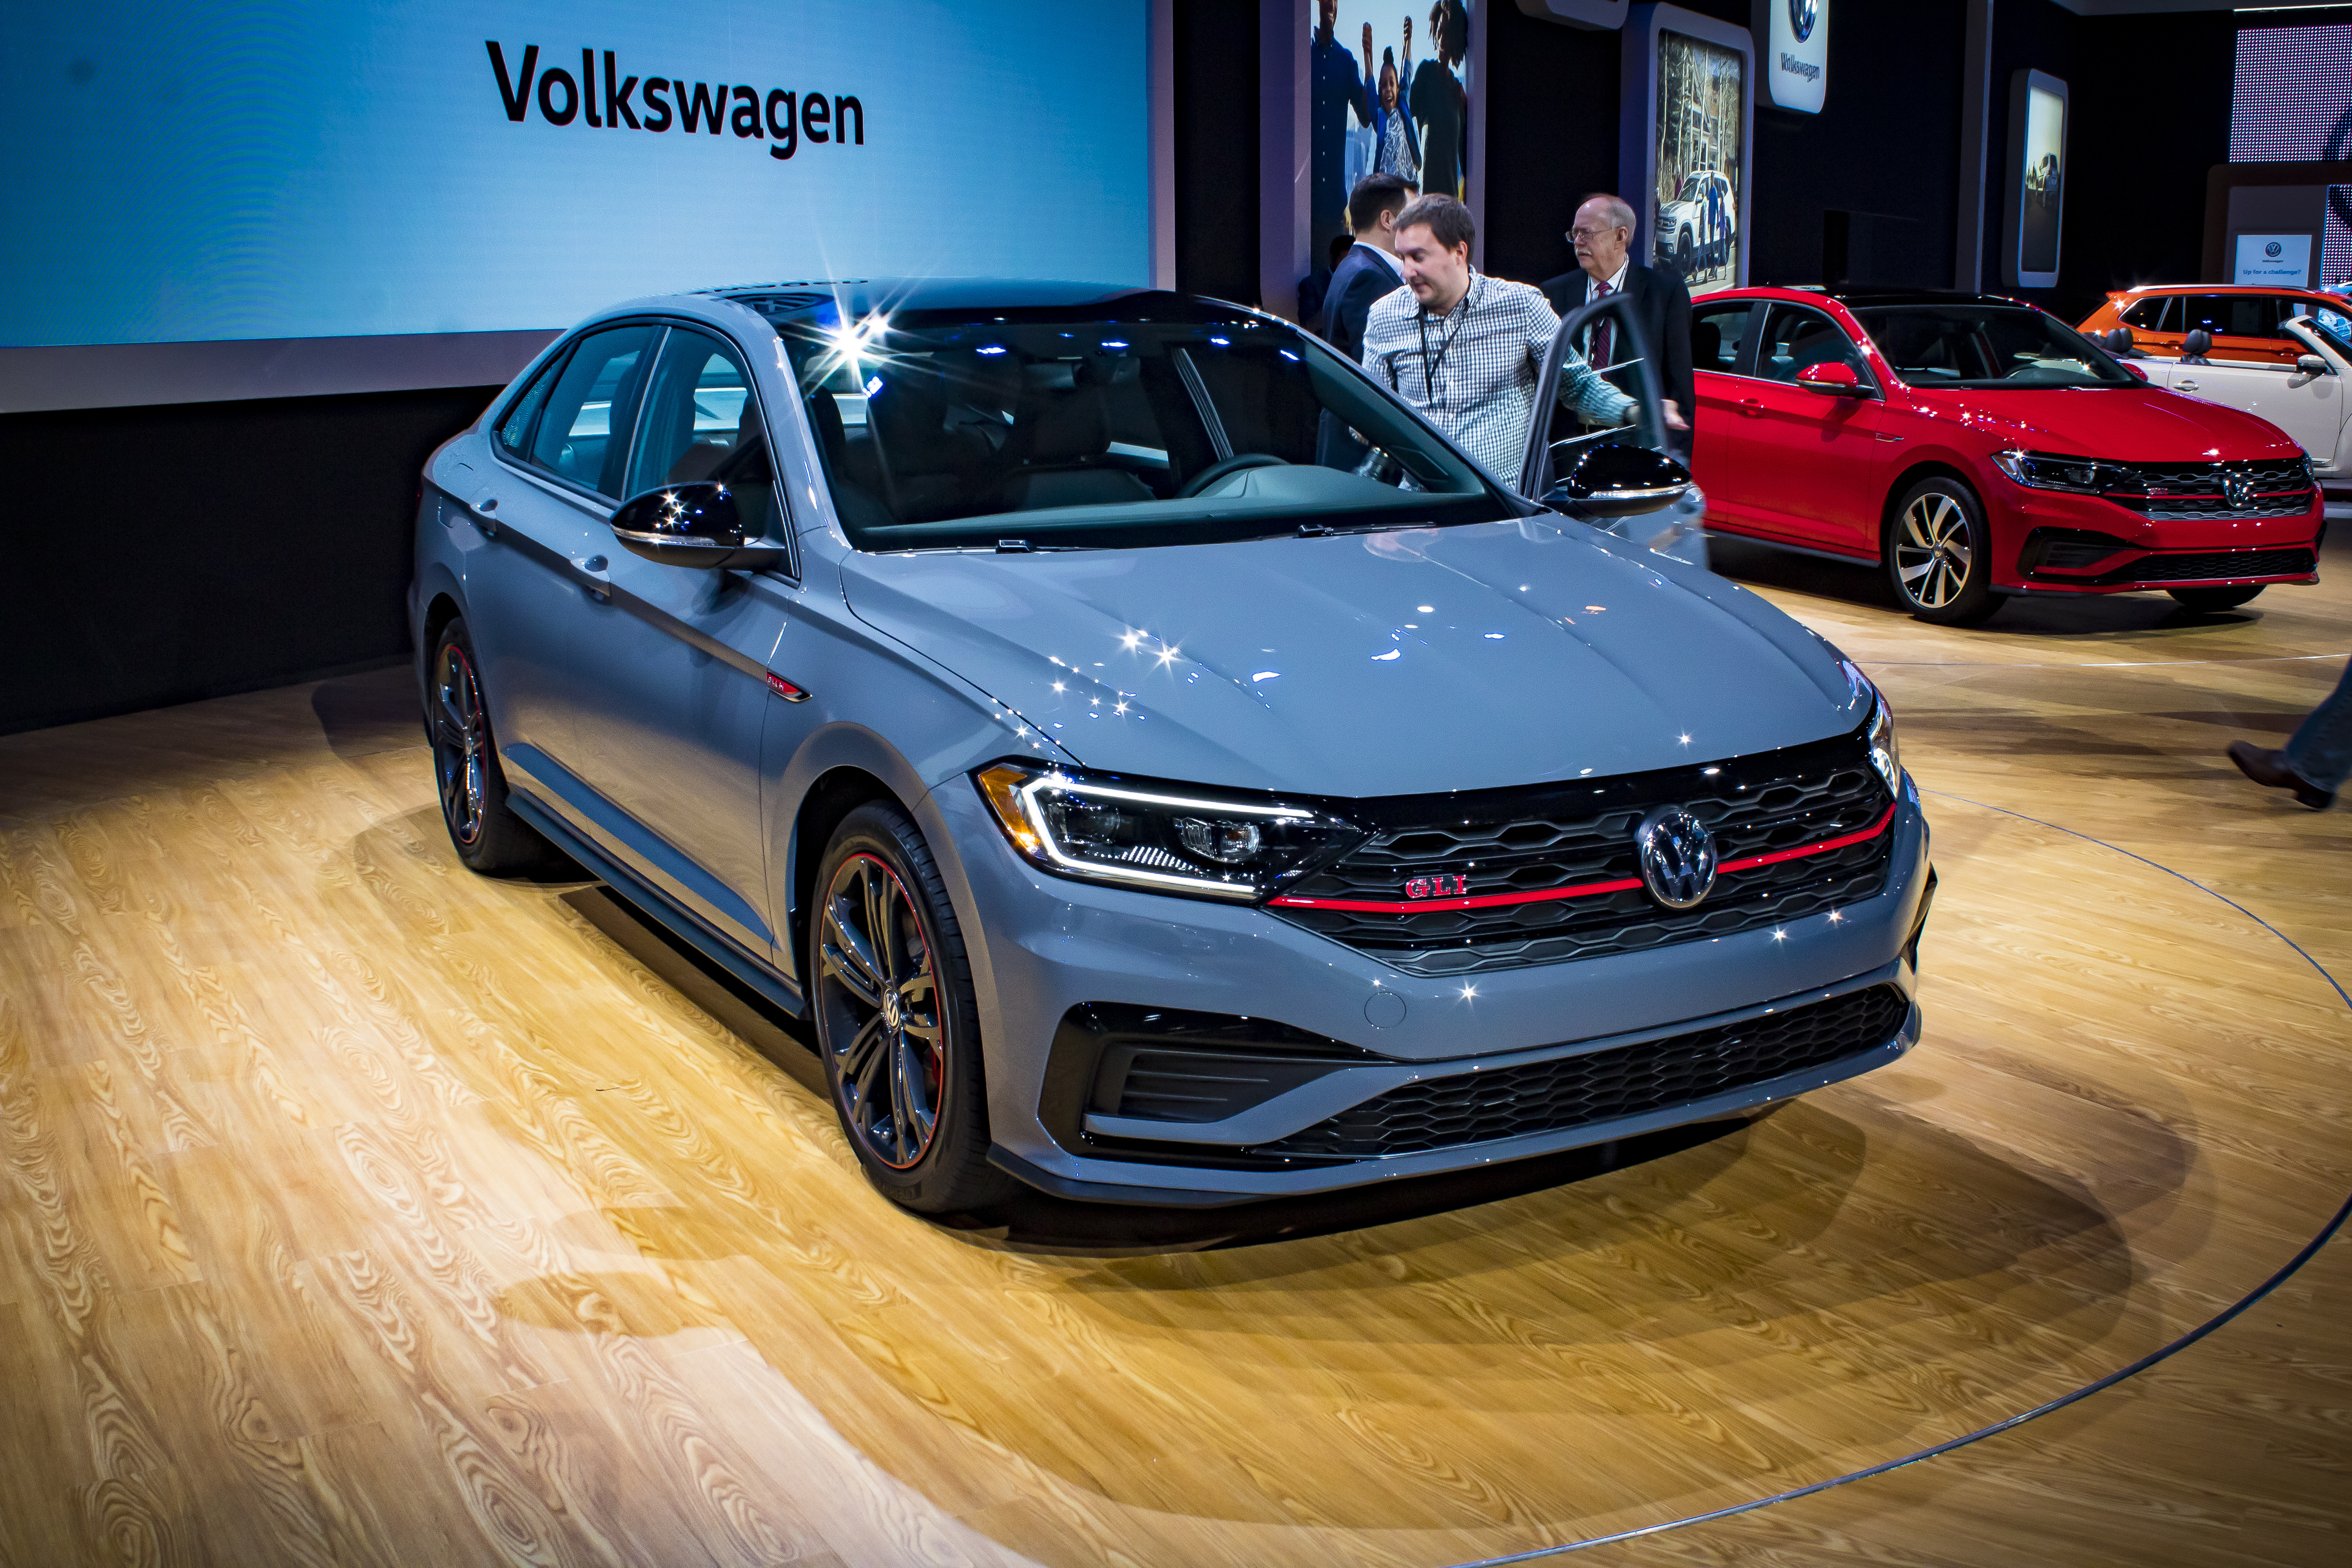 2020 Volkswagen Jetta Gli Will Debut At 2019 Chicago Auto Show In